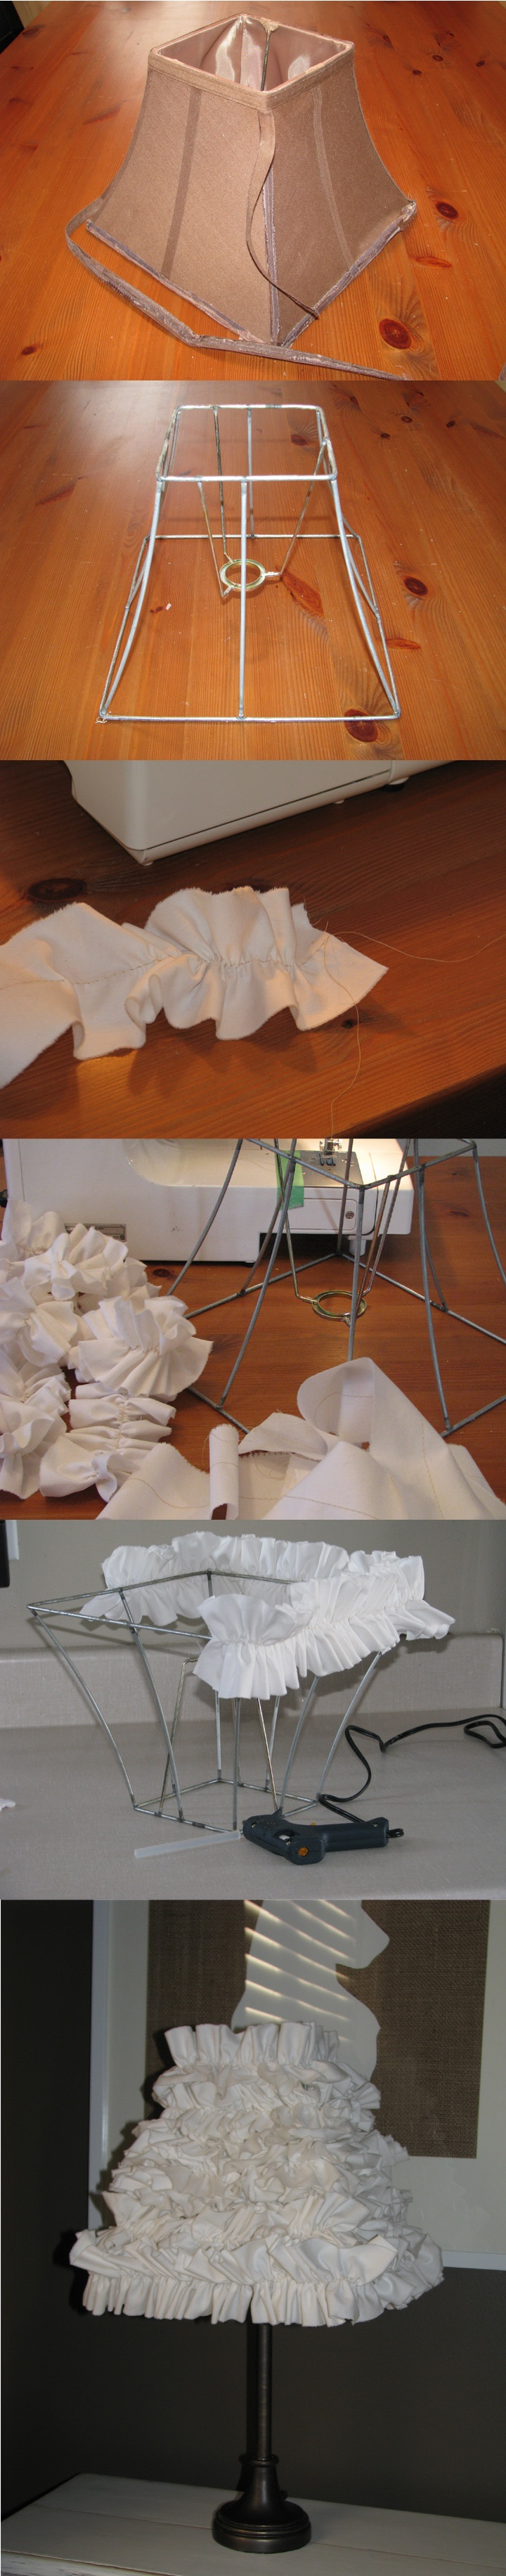 Visual tutorial on the how-to for making a ruffle lamp shade.